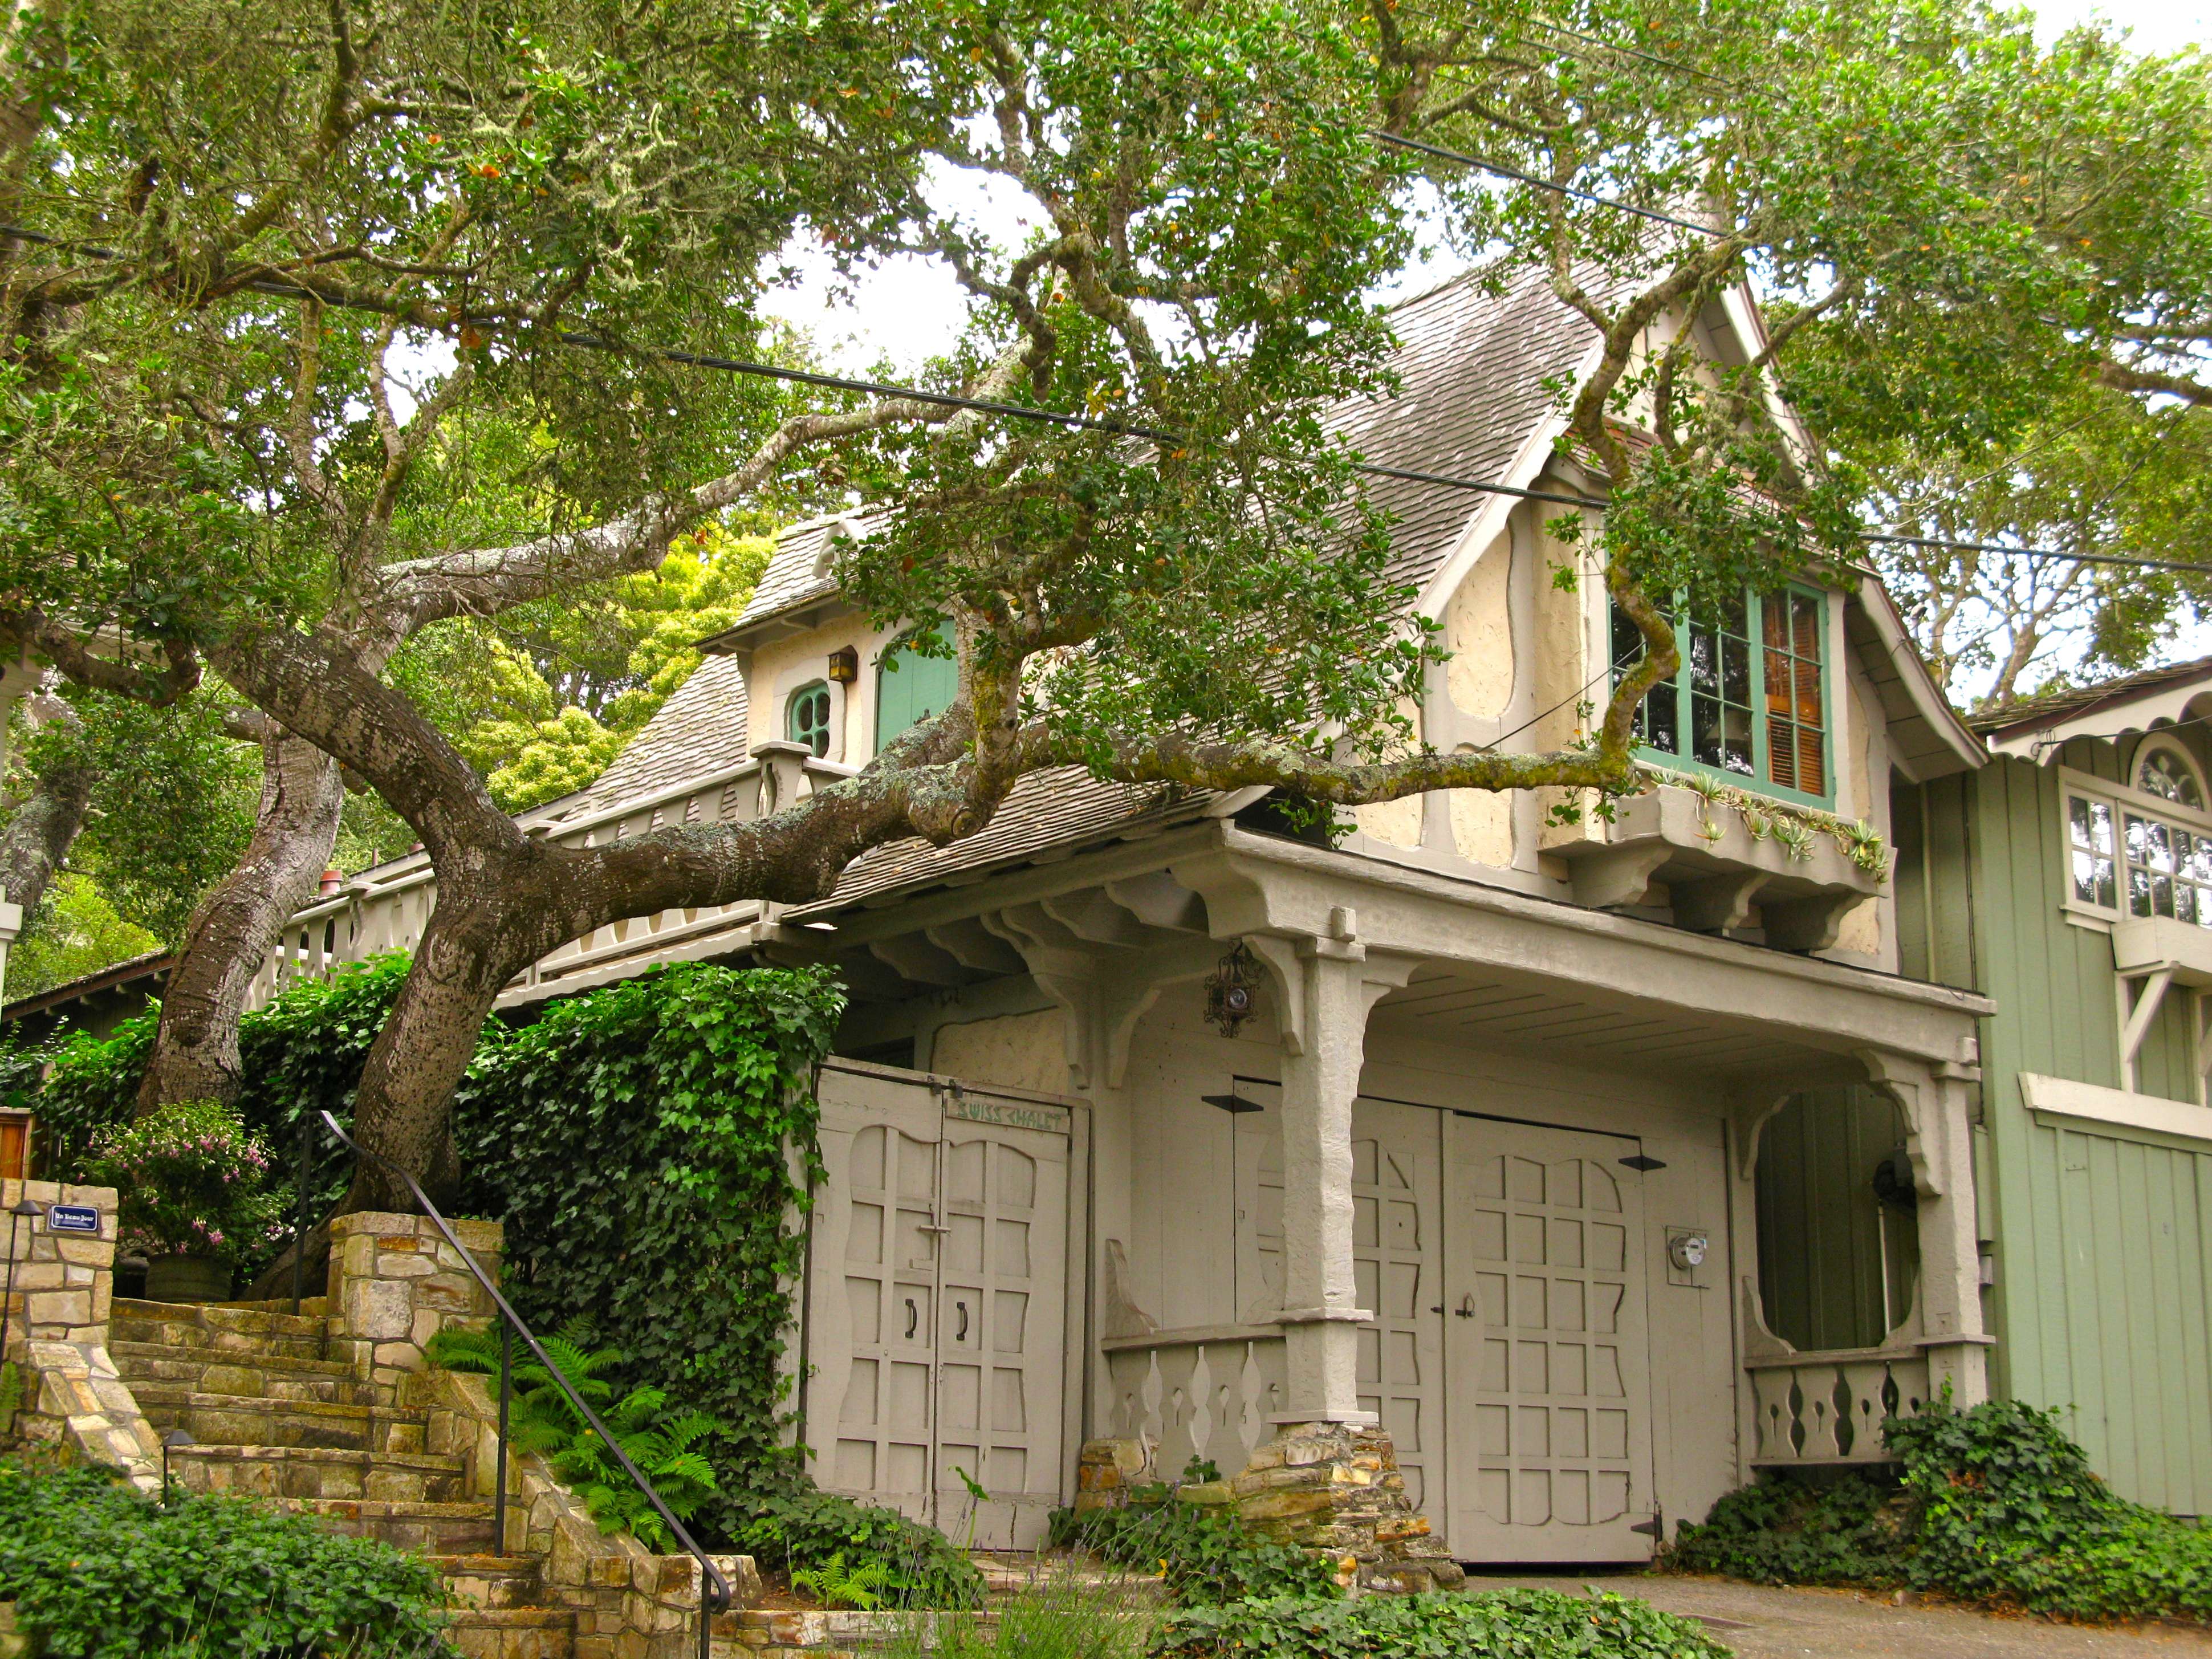 Hugh comstock s swiss chalet a fairytale cottage in for Carmel house